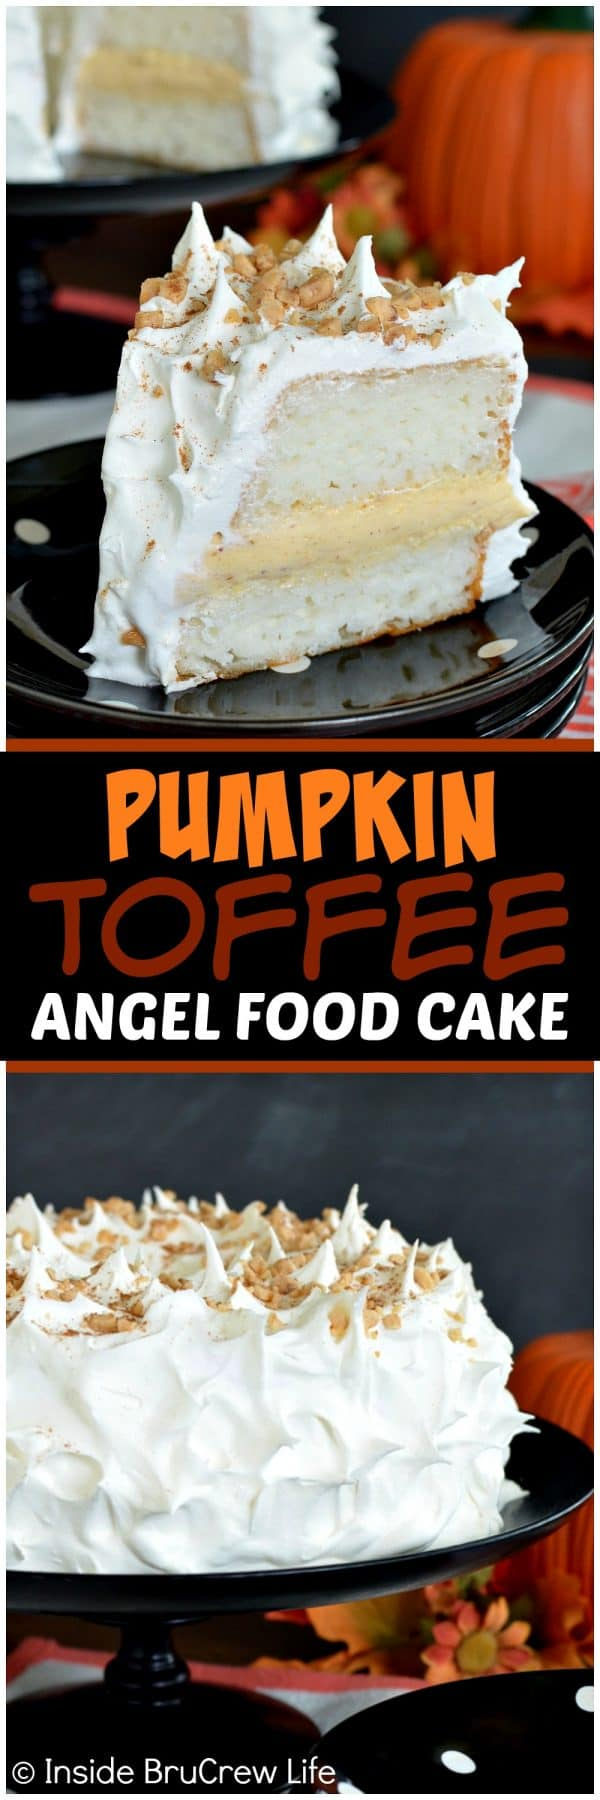 Pumpkin Toffee Angel Food Cake - easy no bake pumpkin filling inside an angel food cake makes an impressive dessert for dinner parties. Easy recipe to put together in minutes.